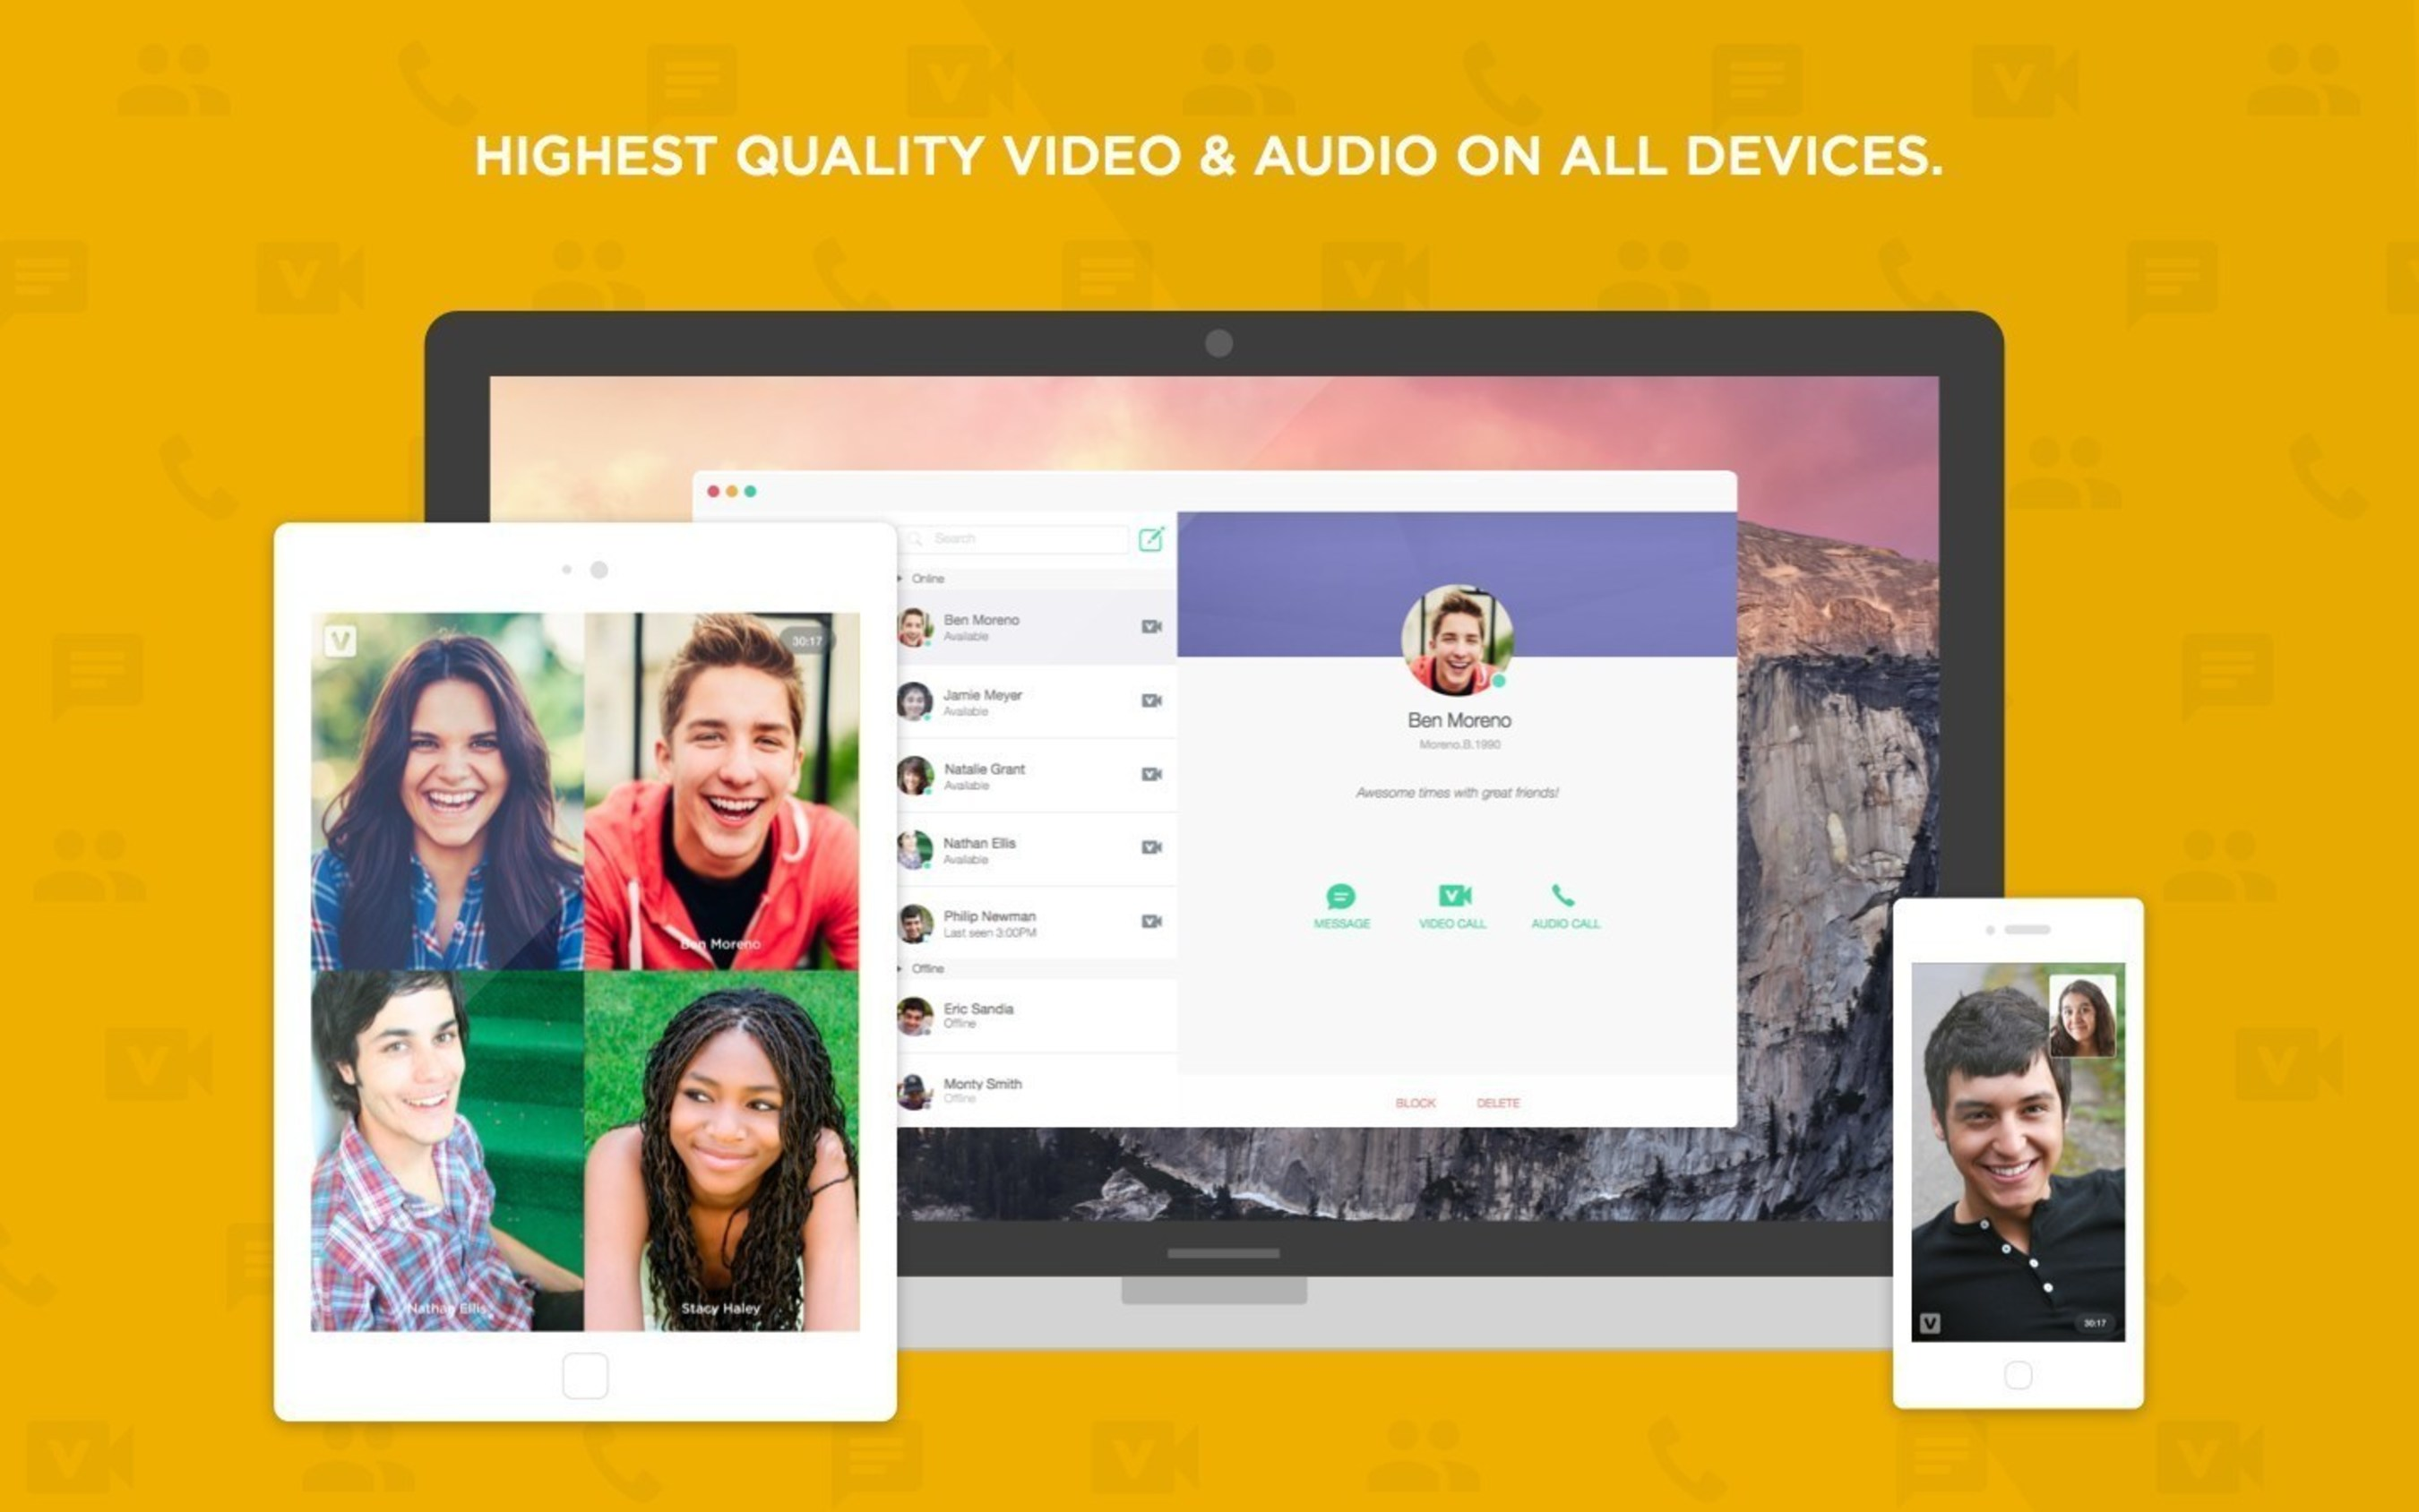 Connect with your friends anywhere, anytime, and on any device.